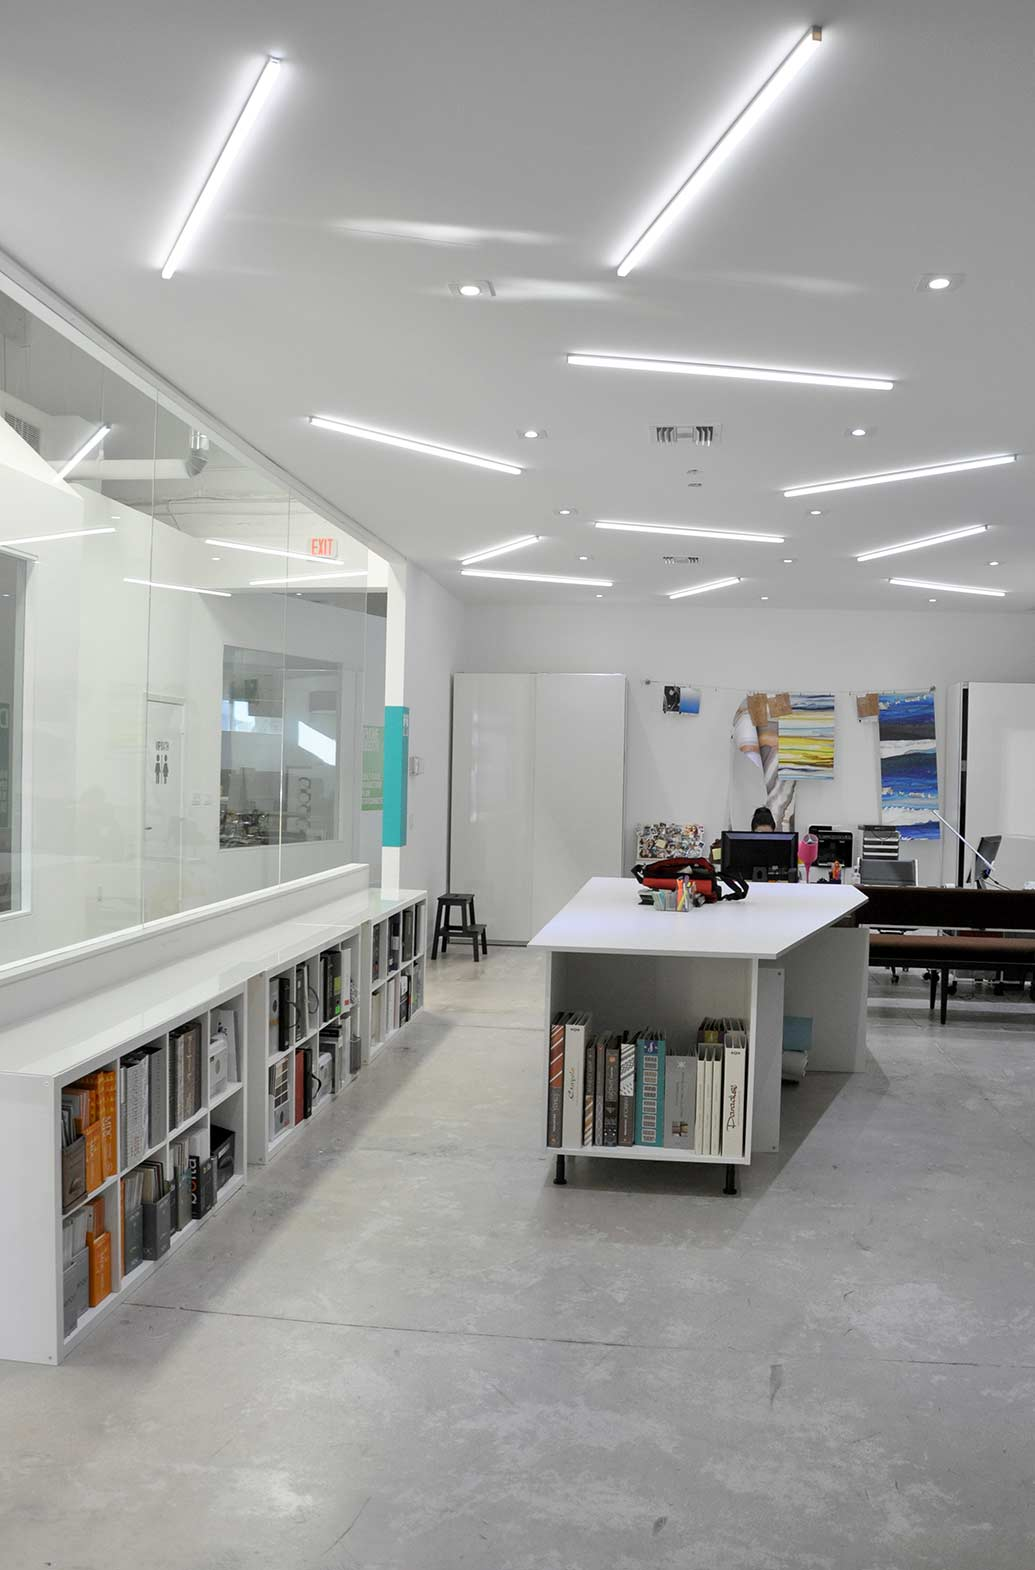 Florida interior design studio rightly illuminated with ...